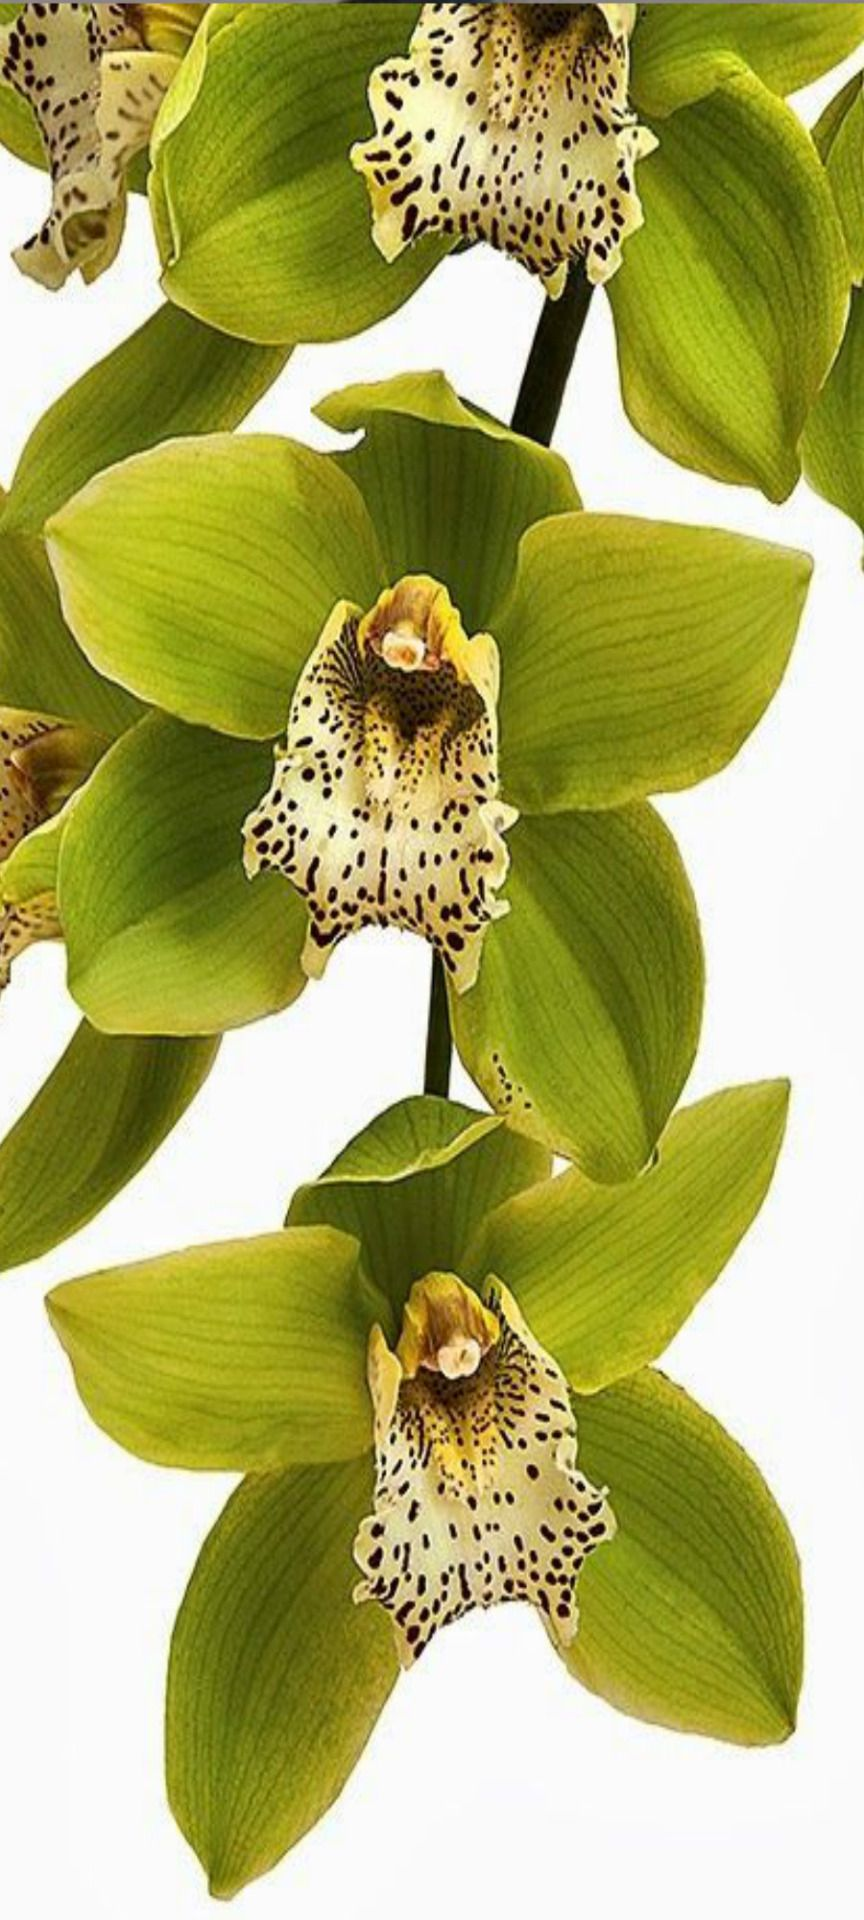 Pin by Оксана Ошэр on orchids pinterest orchid flowers and flower